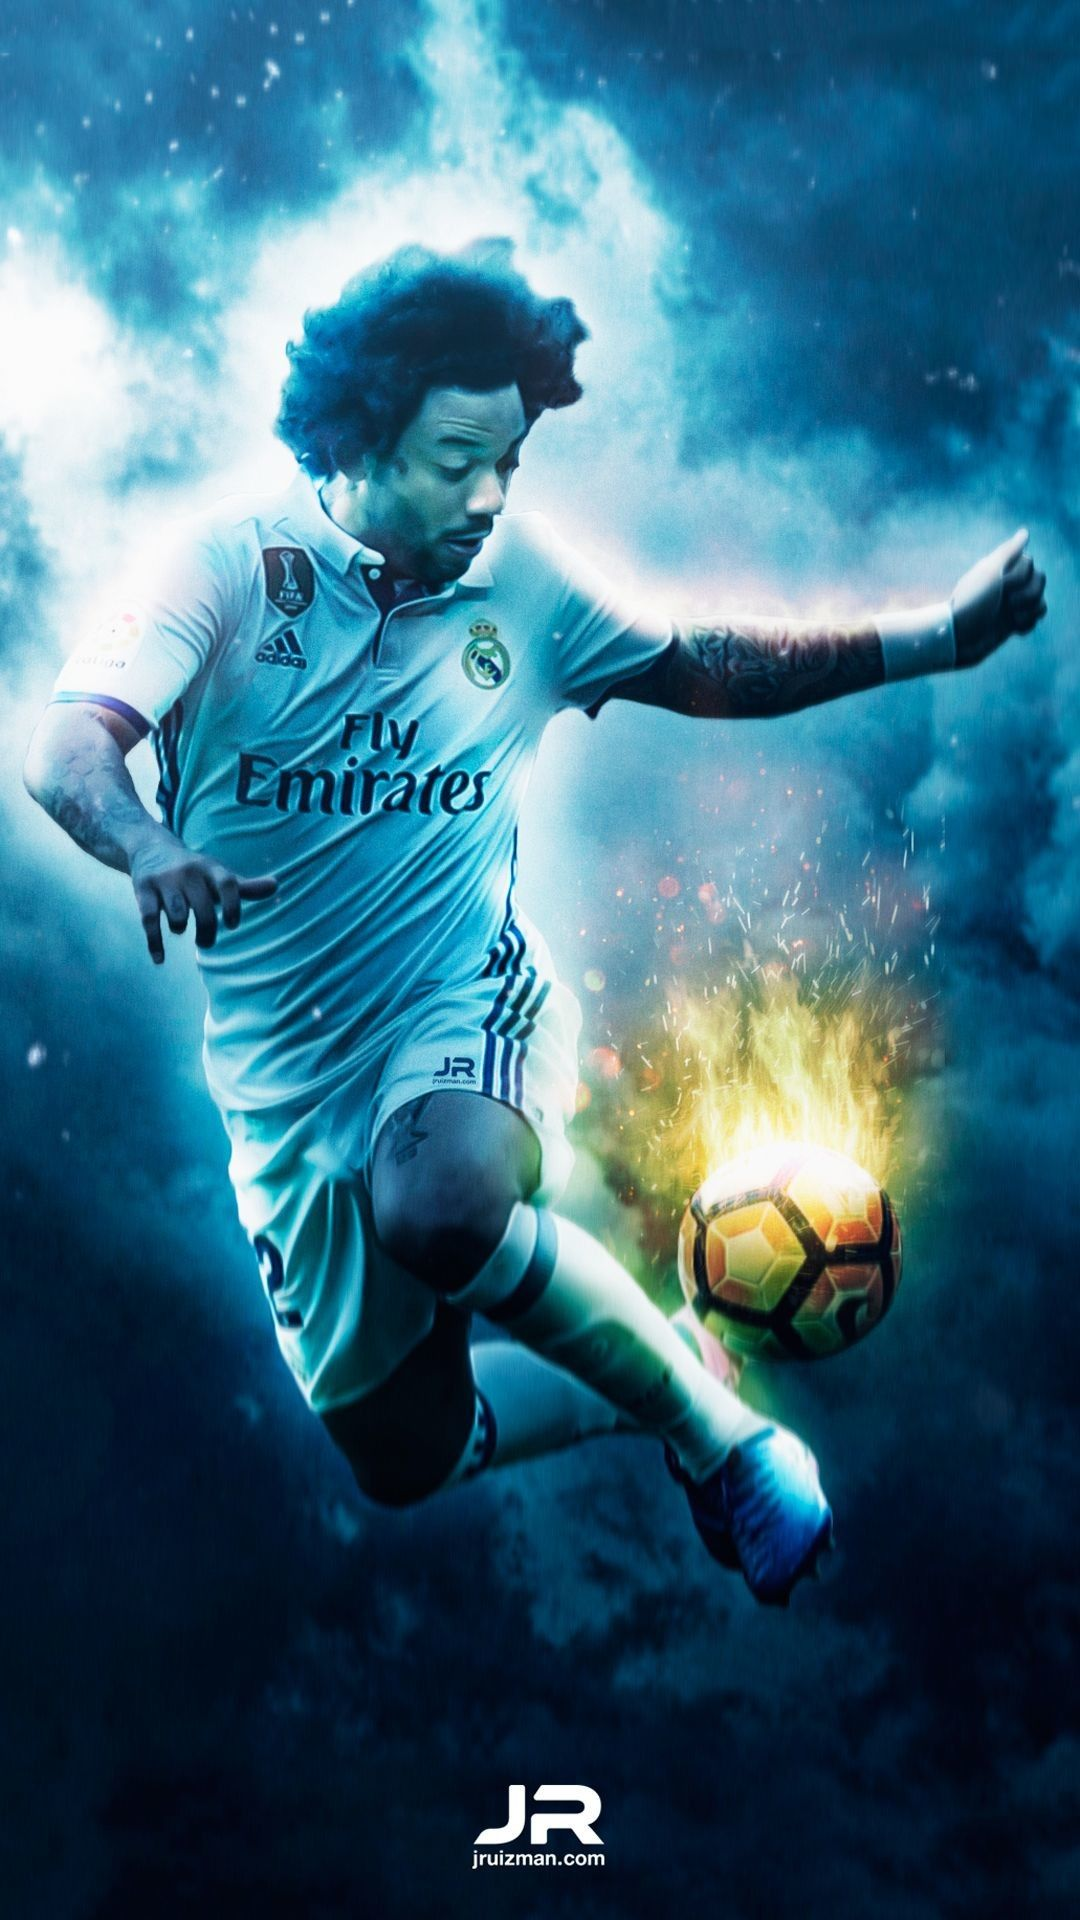 Real Madrid Wallpaper Equipo 2018 Hd Football In 2020 Team Wallpaper Real Madrid Wallpapers Football Wallpaper